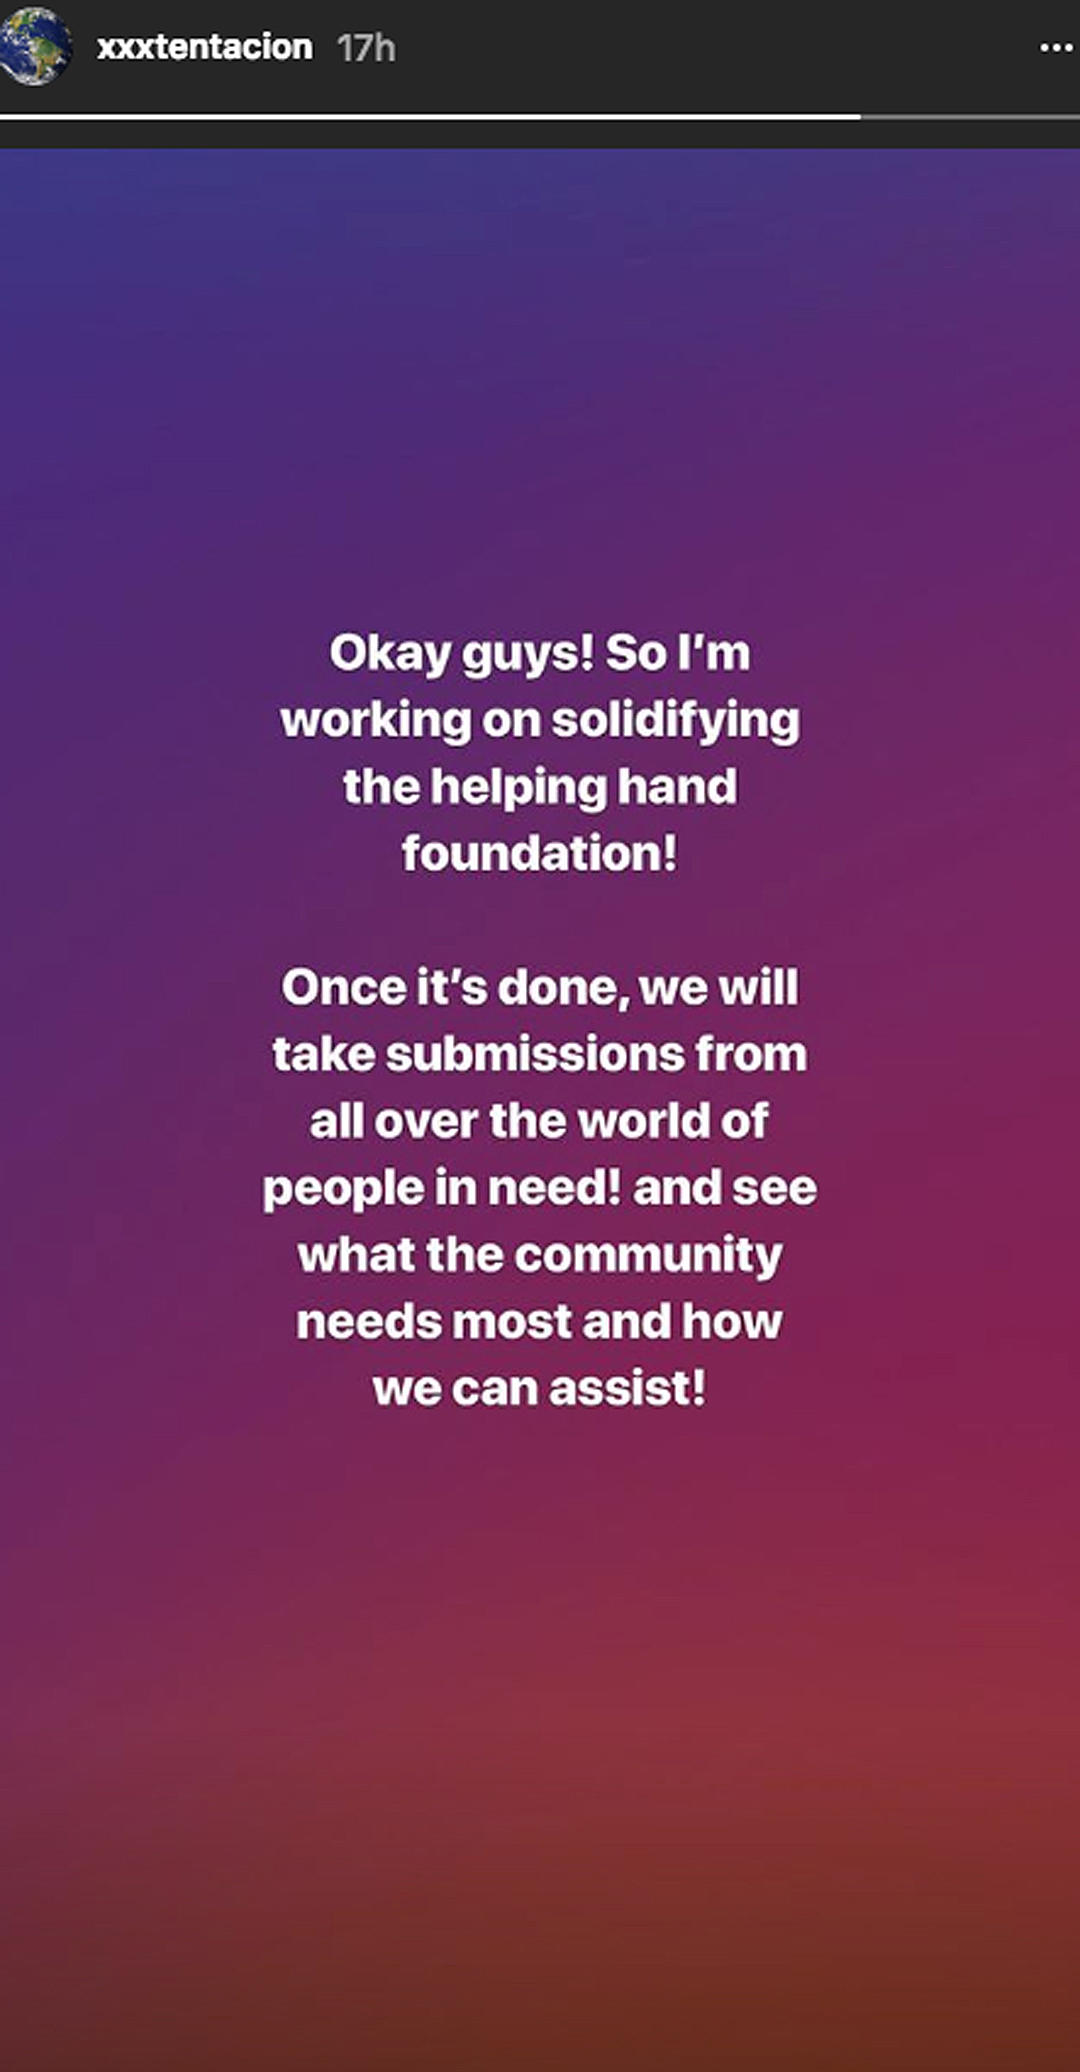 XXXTENTACION To Launch Helping Hand Foundation With His